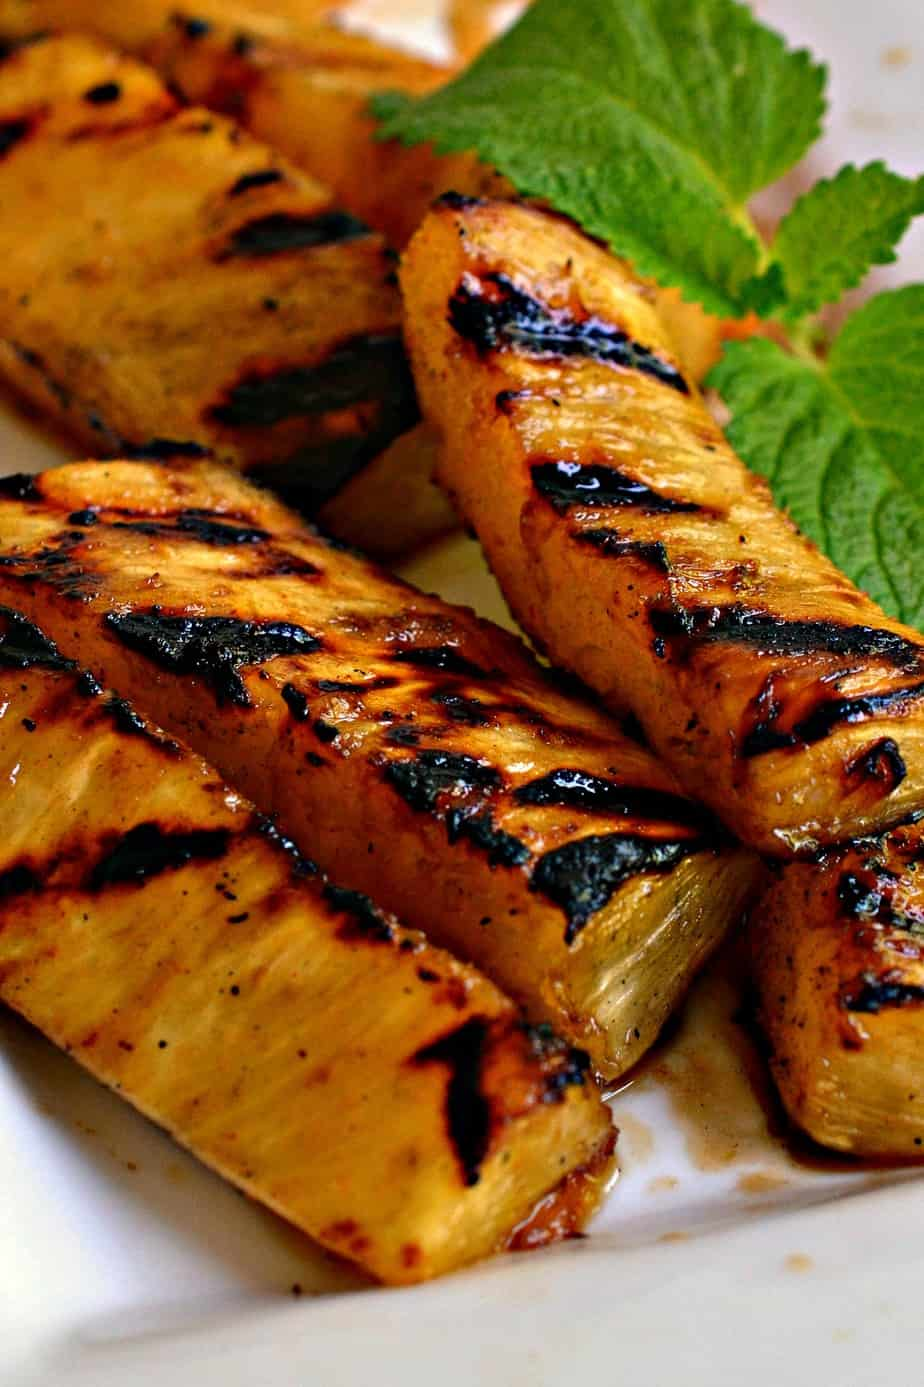 Grilled pineapple is a delectable treat that the whole family can enjoy.